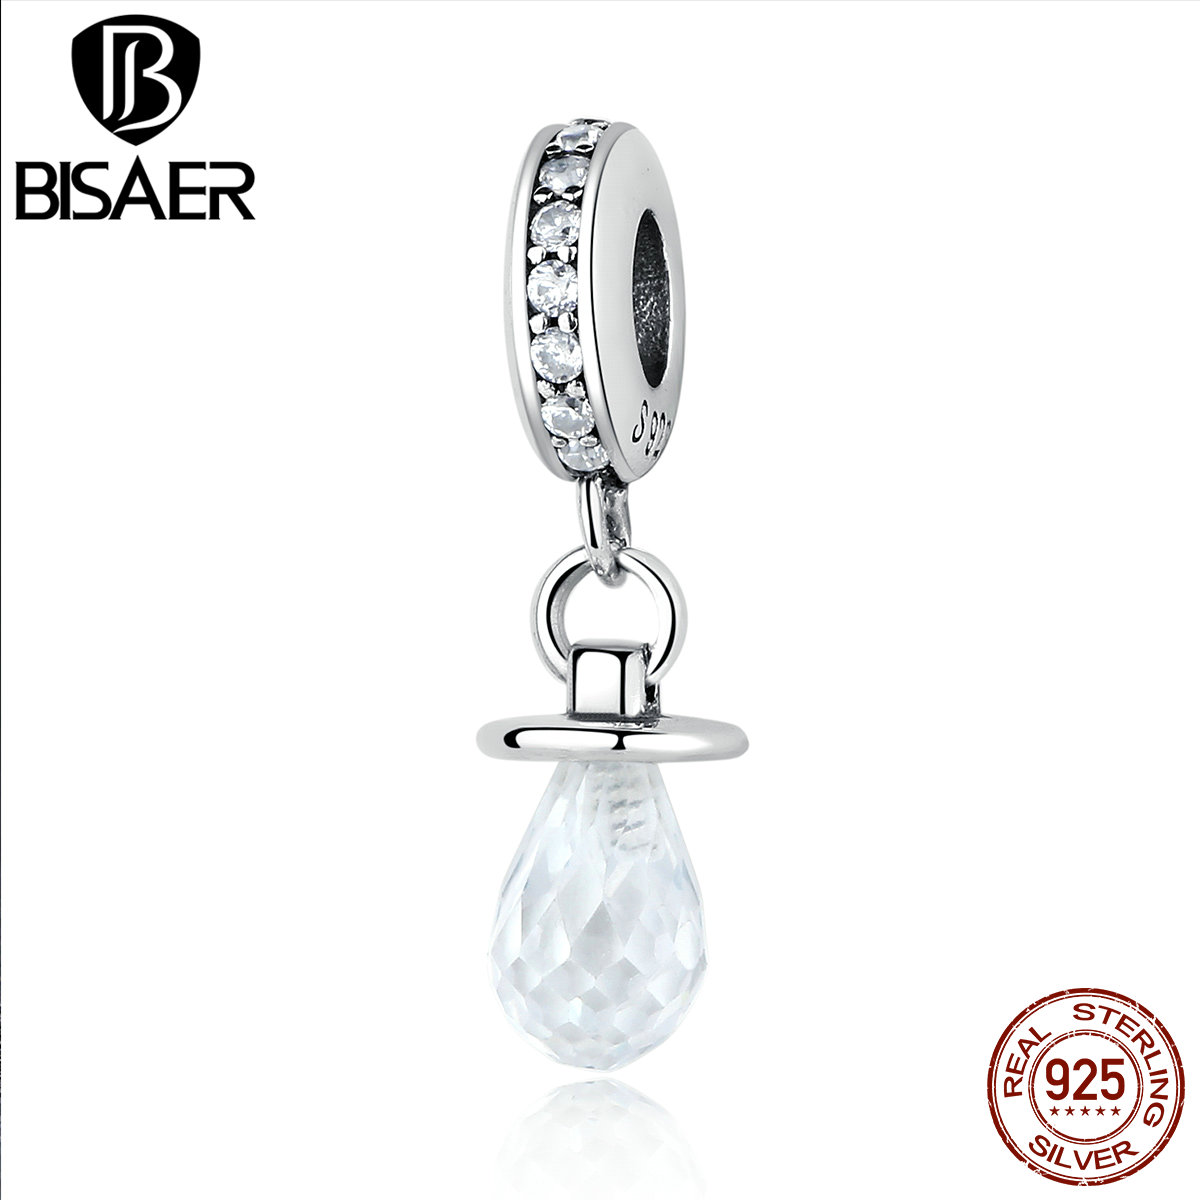 100% 925 Sterling Silver Pacifier, Clear CZ White Nipple Pendant Charms Fit BISAER Bracelets & Necklaces Jewelry WEUS364